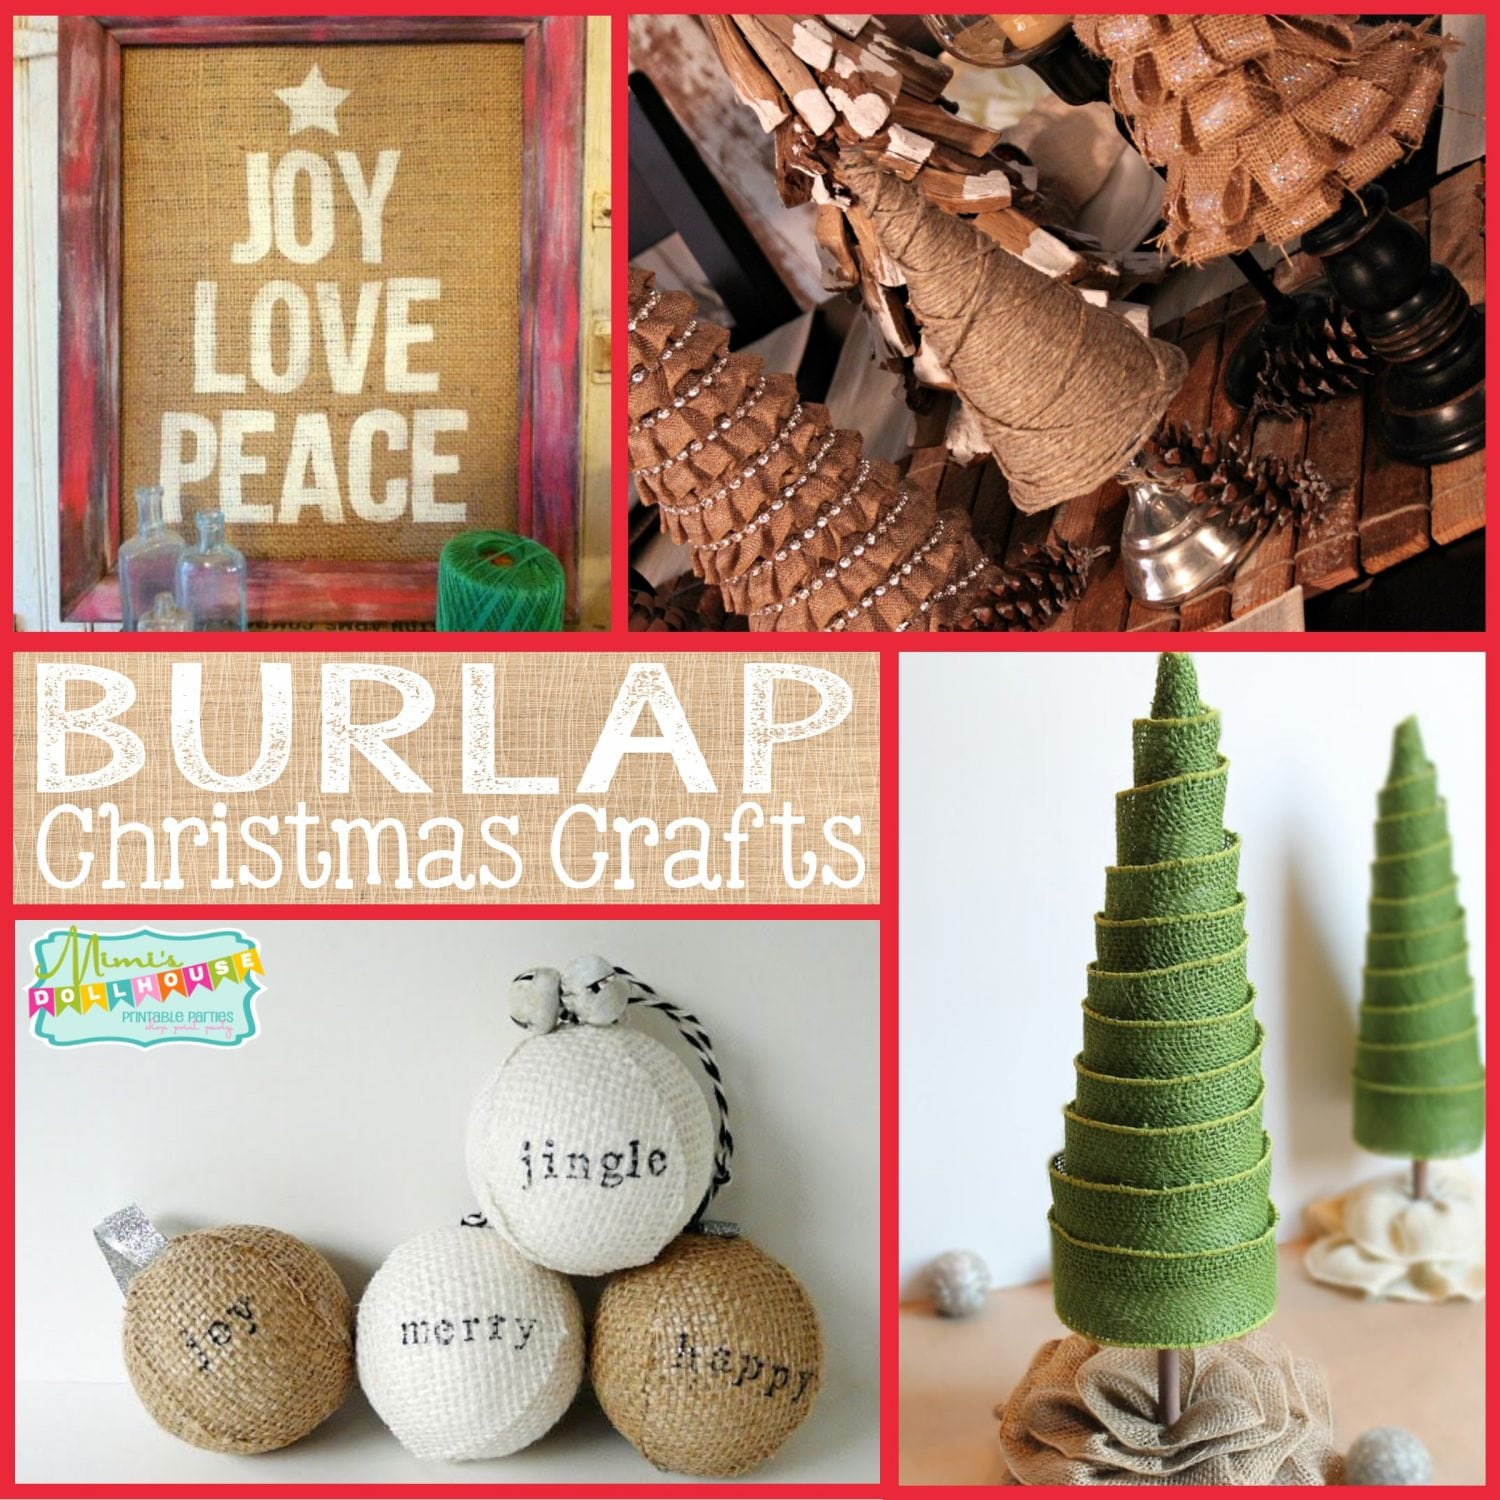 Christmas: Burlap Christmas Crafts | Mimi's Dollhouse